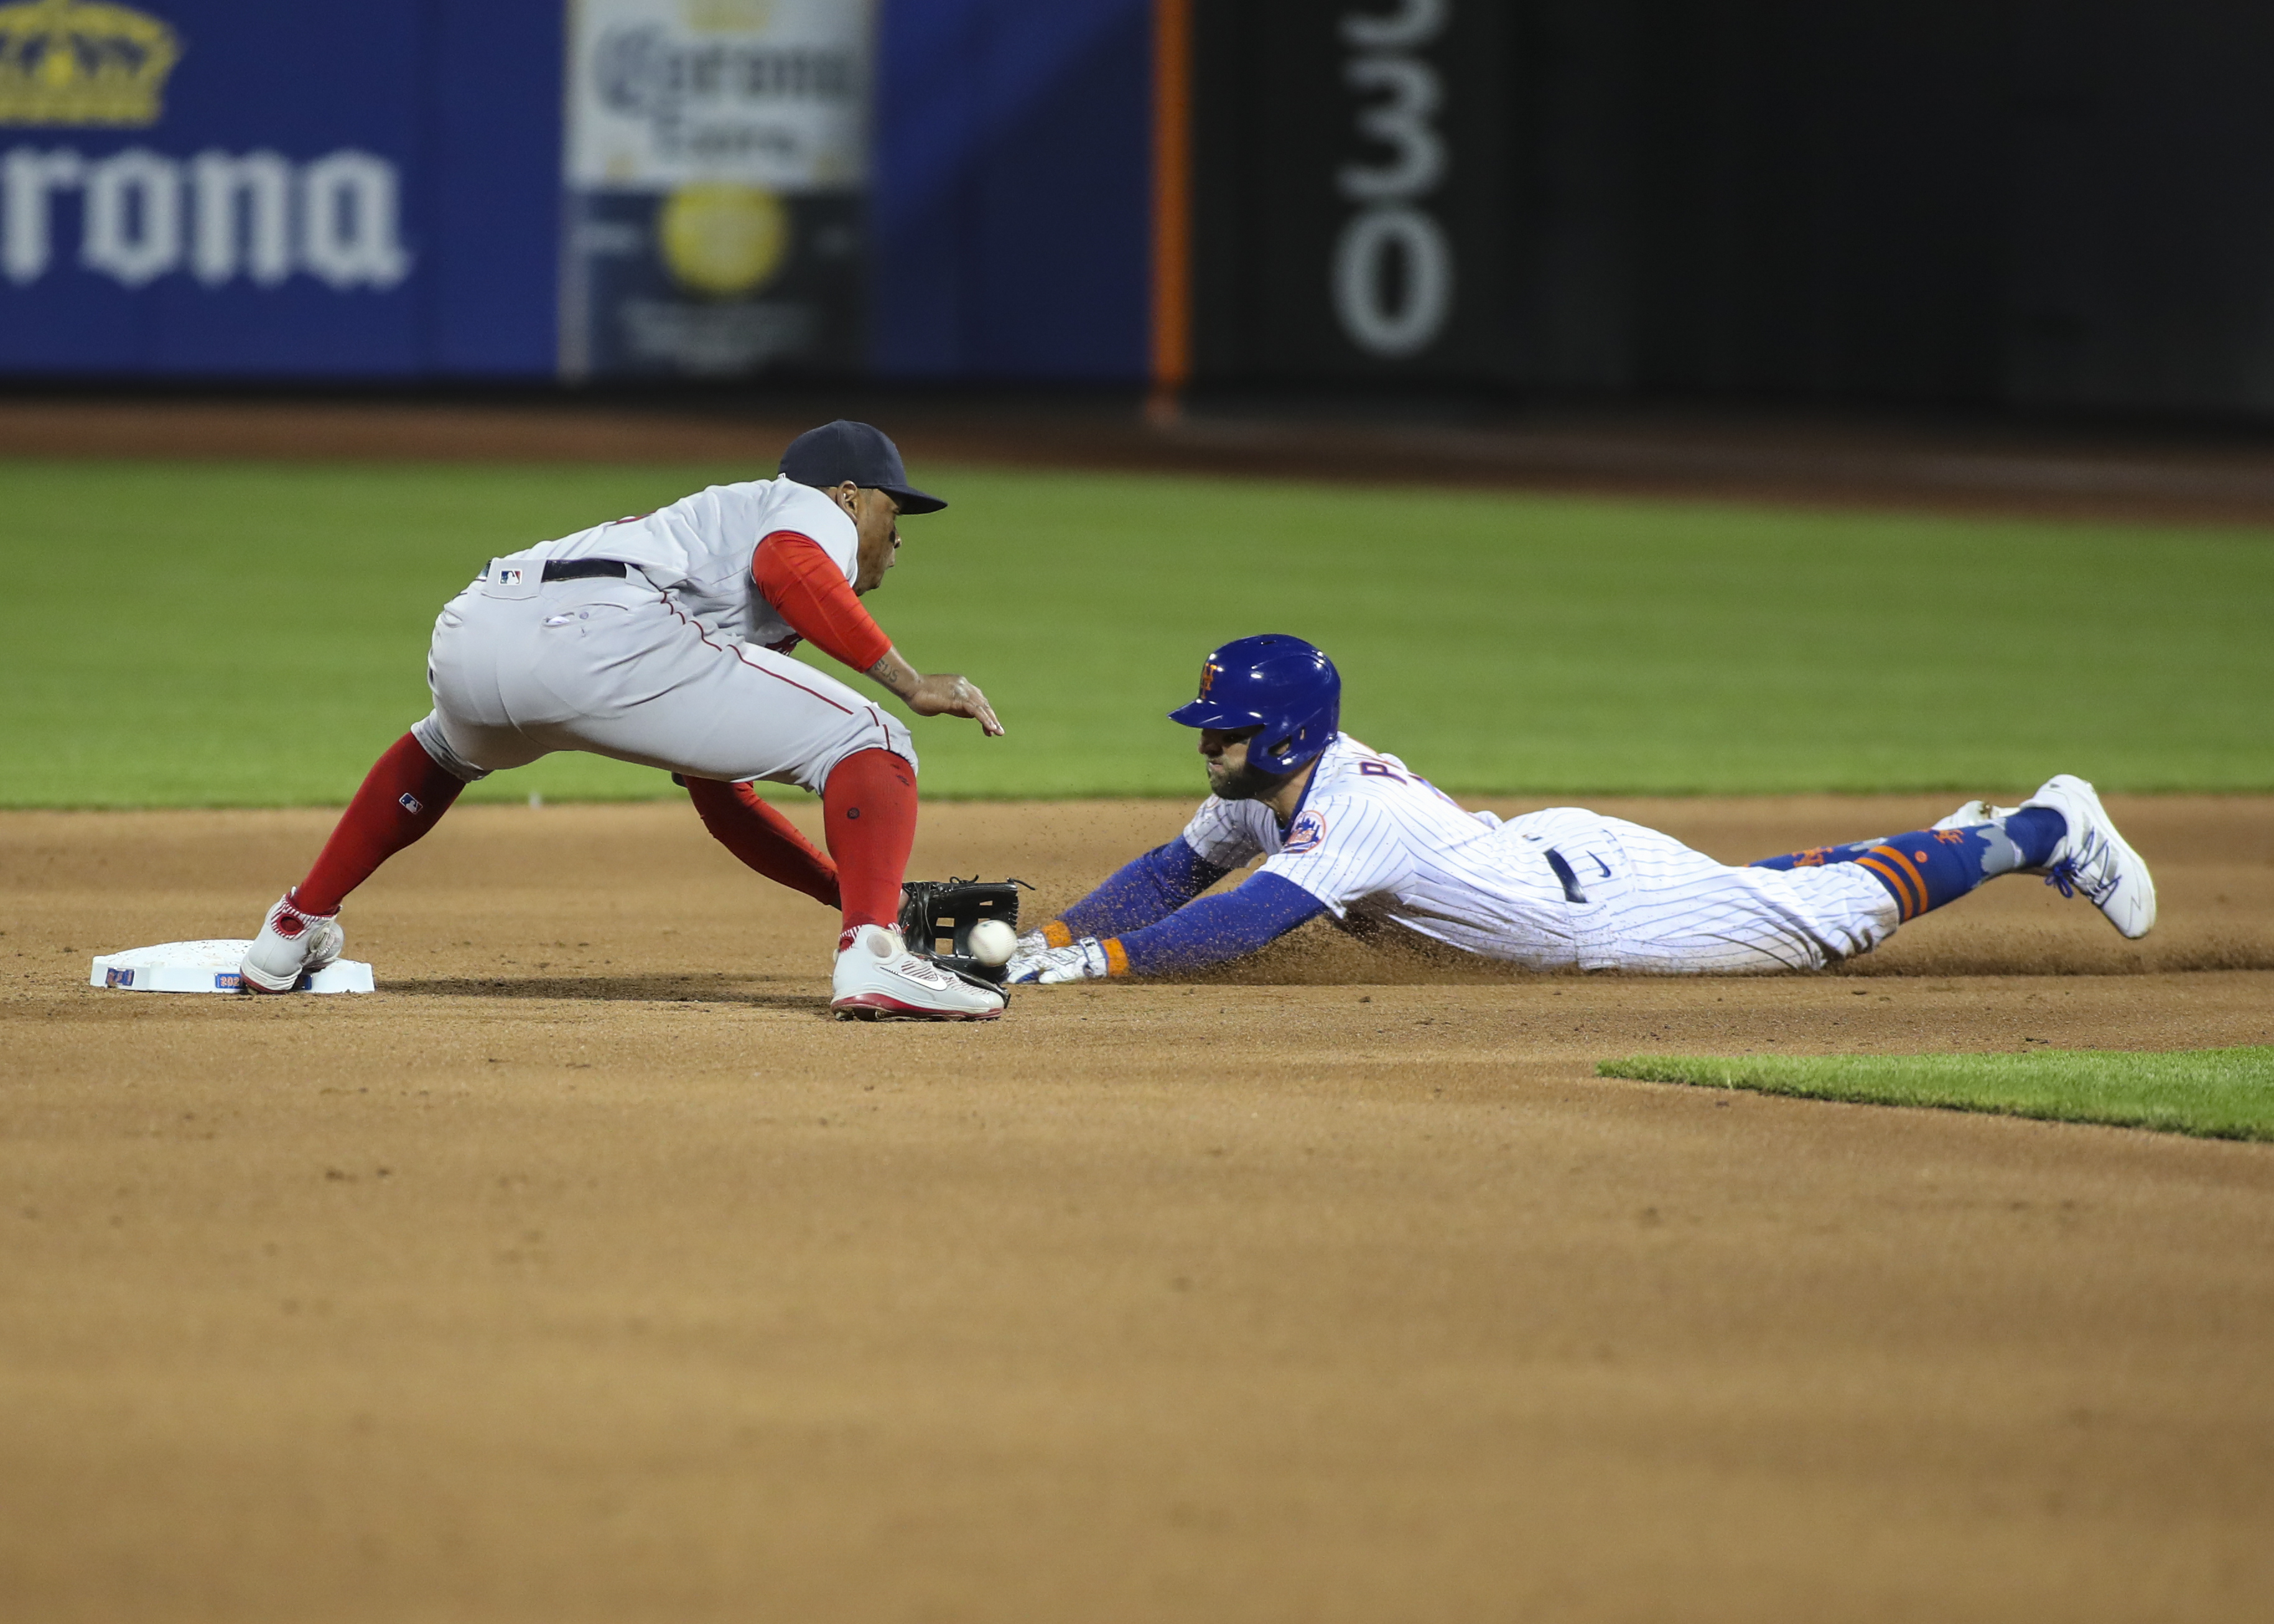 4/28/21 Game Preview: Boston Red Sox at New York Mets